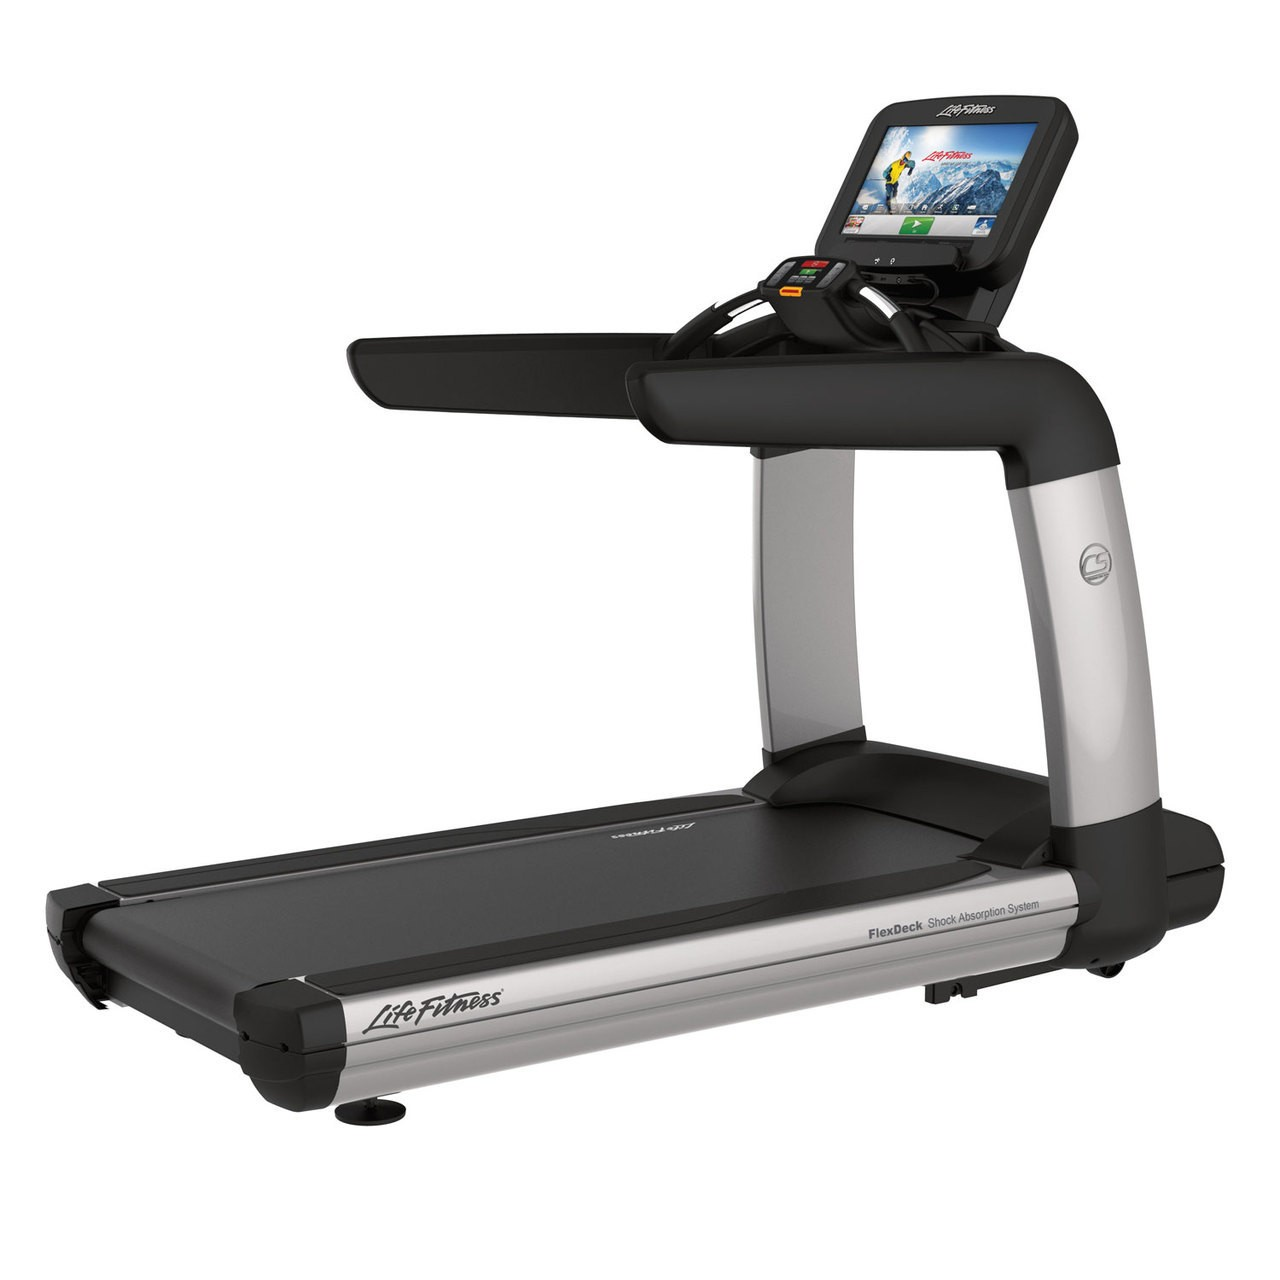 Life Fitness Treadmill Discover Si: Life Fitness Elevation Series Discover SE Treadmill